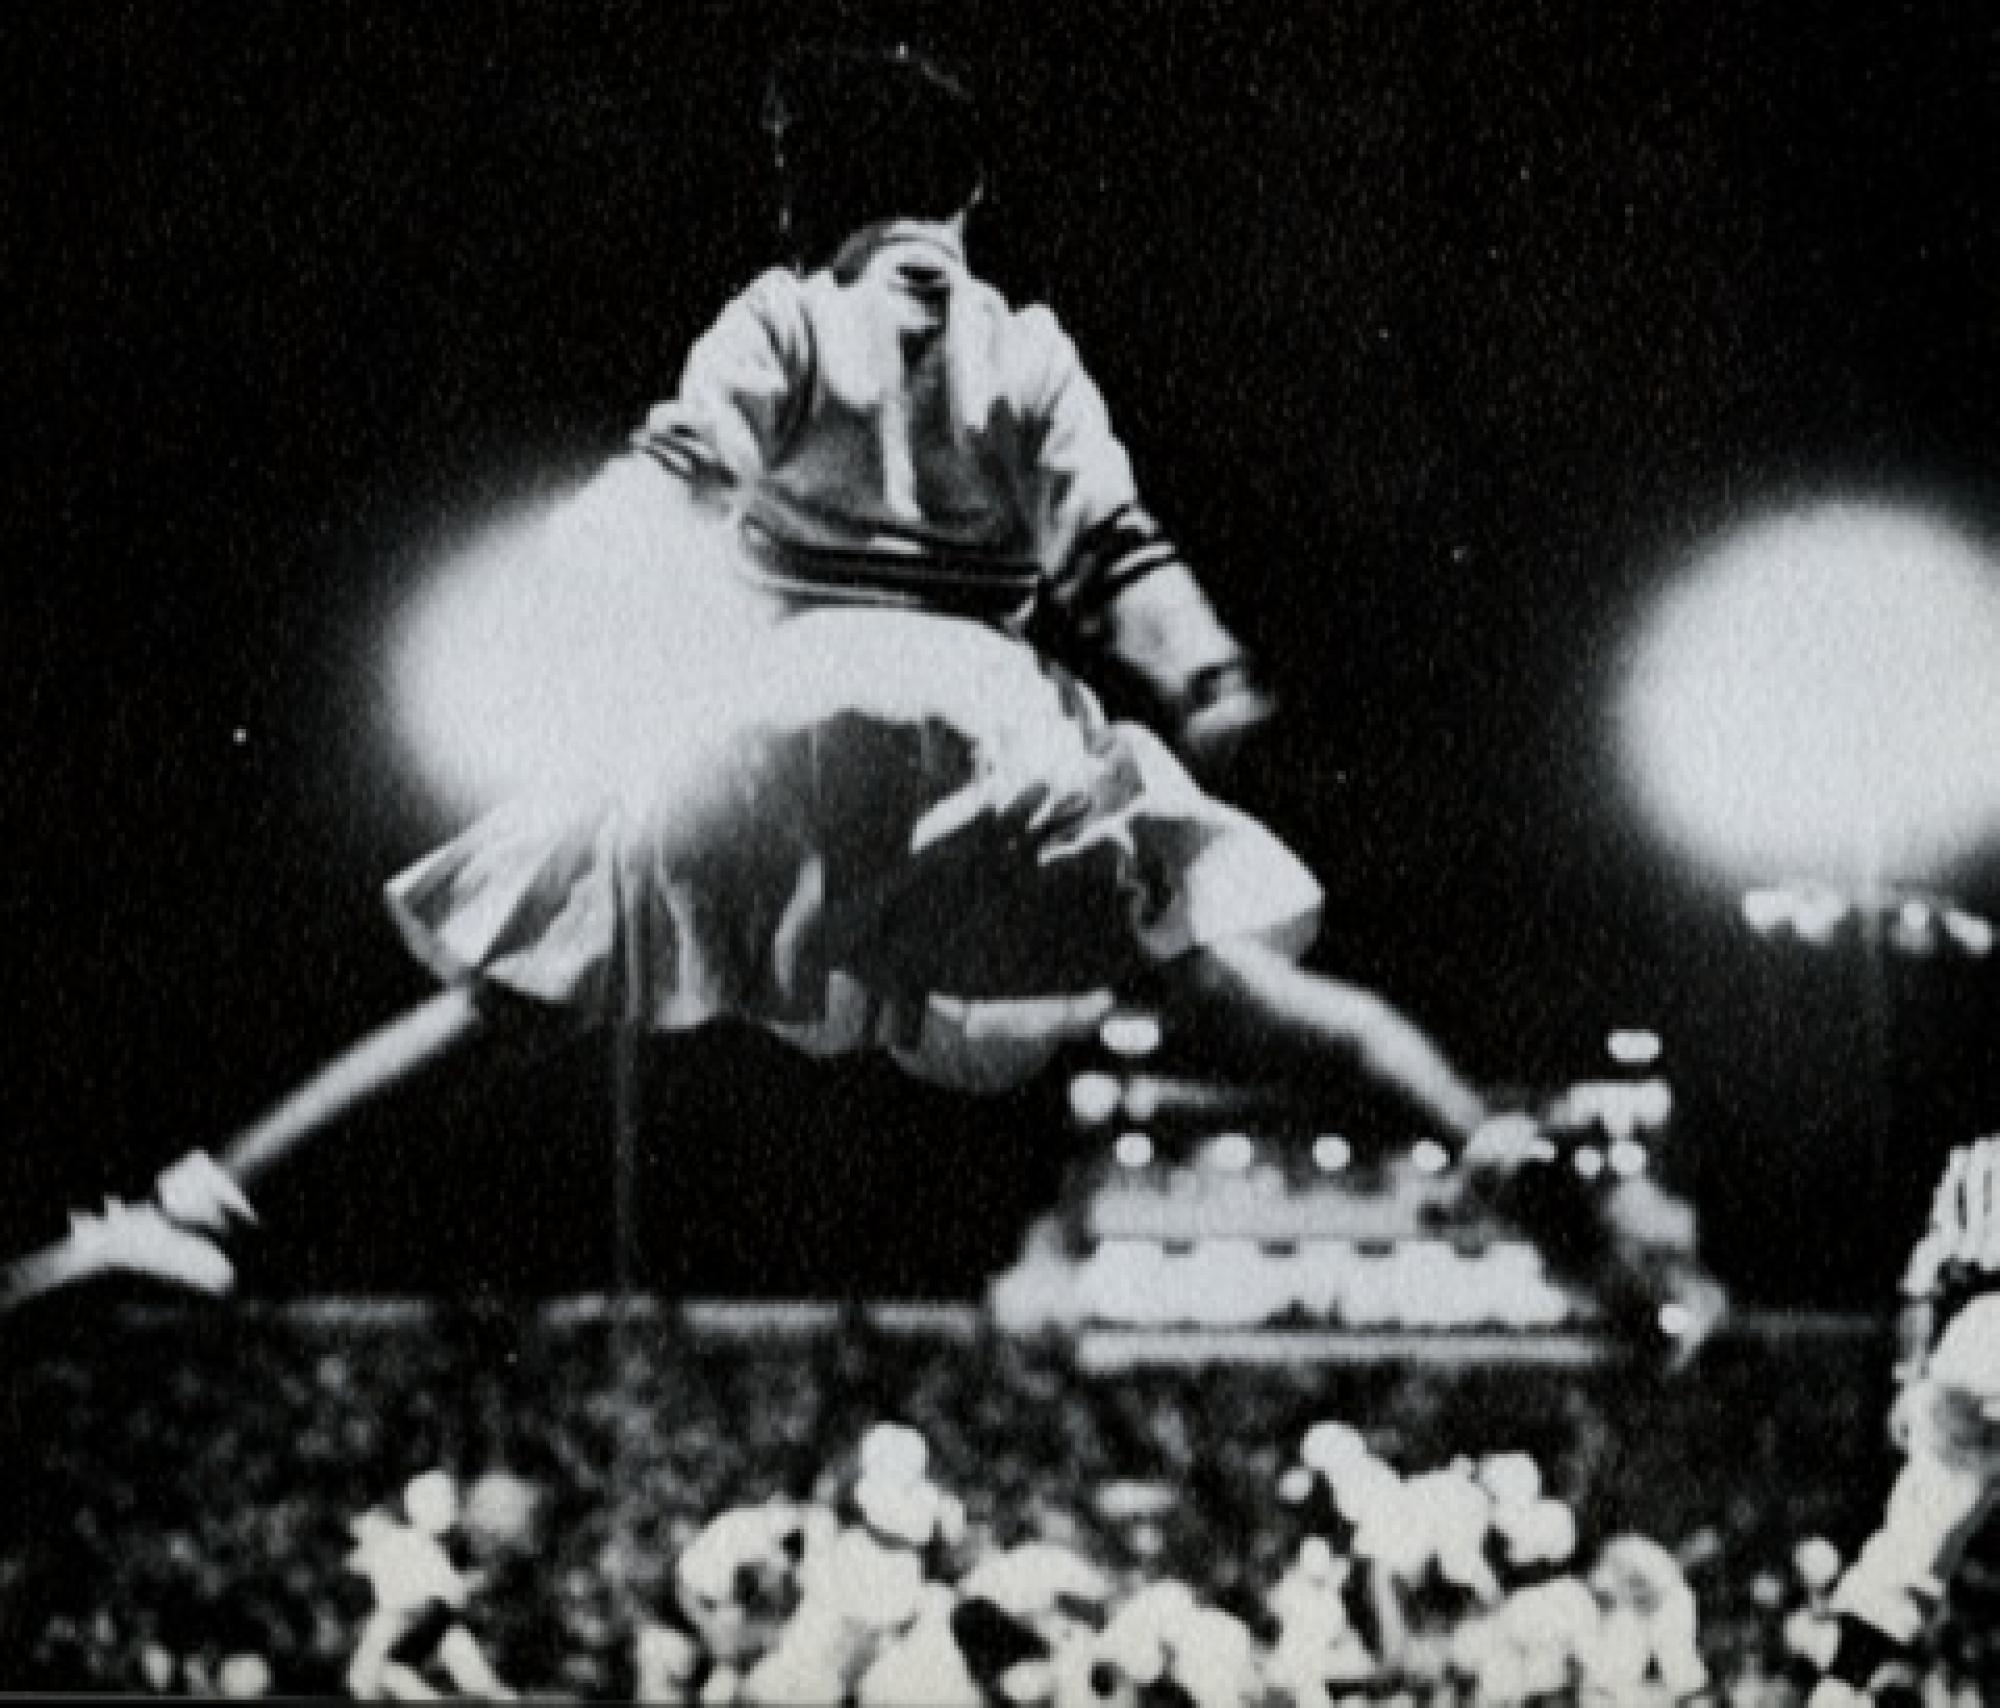 A cheerleader in a mid-air pose during a 1961 football game.